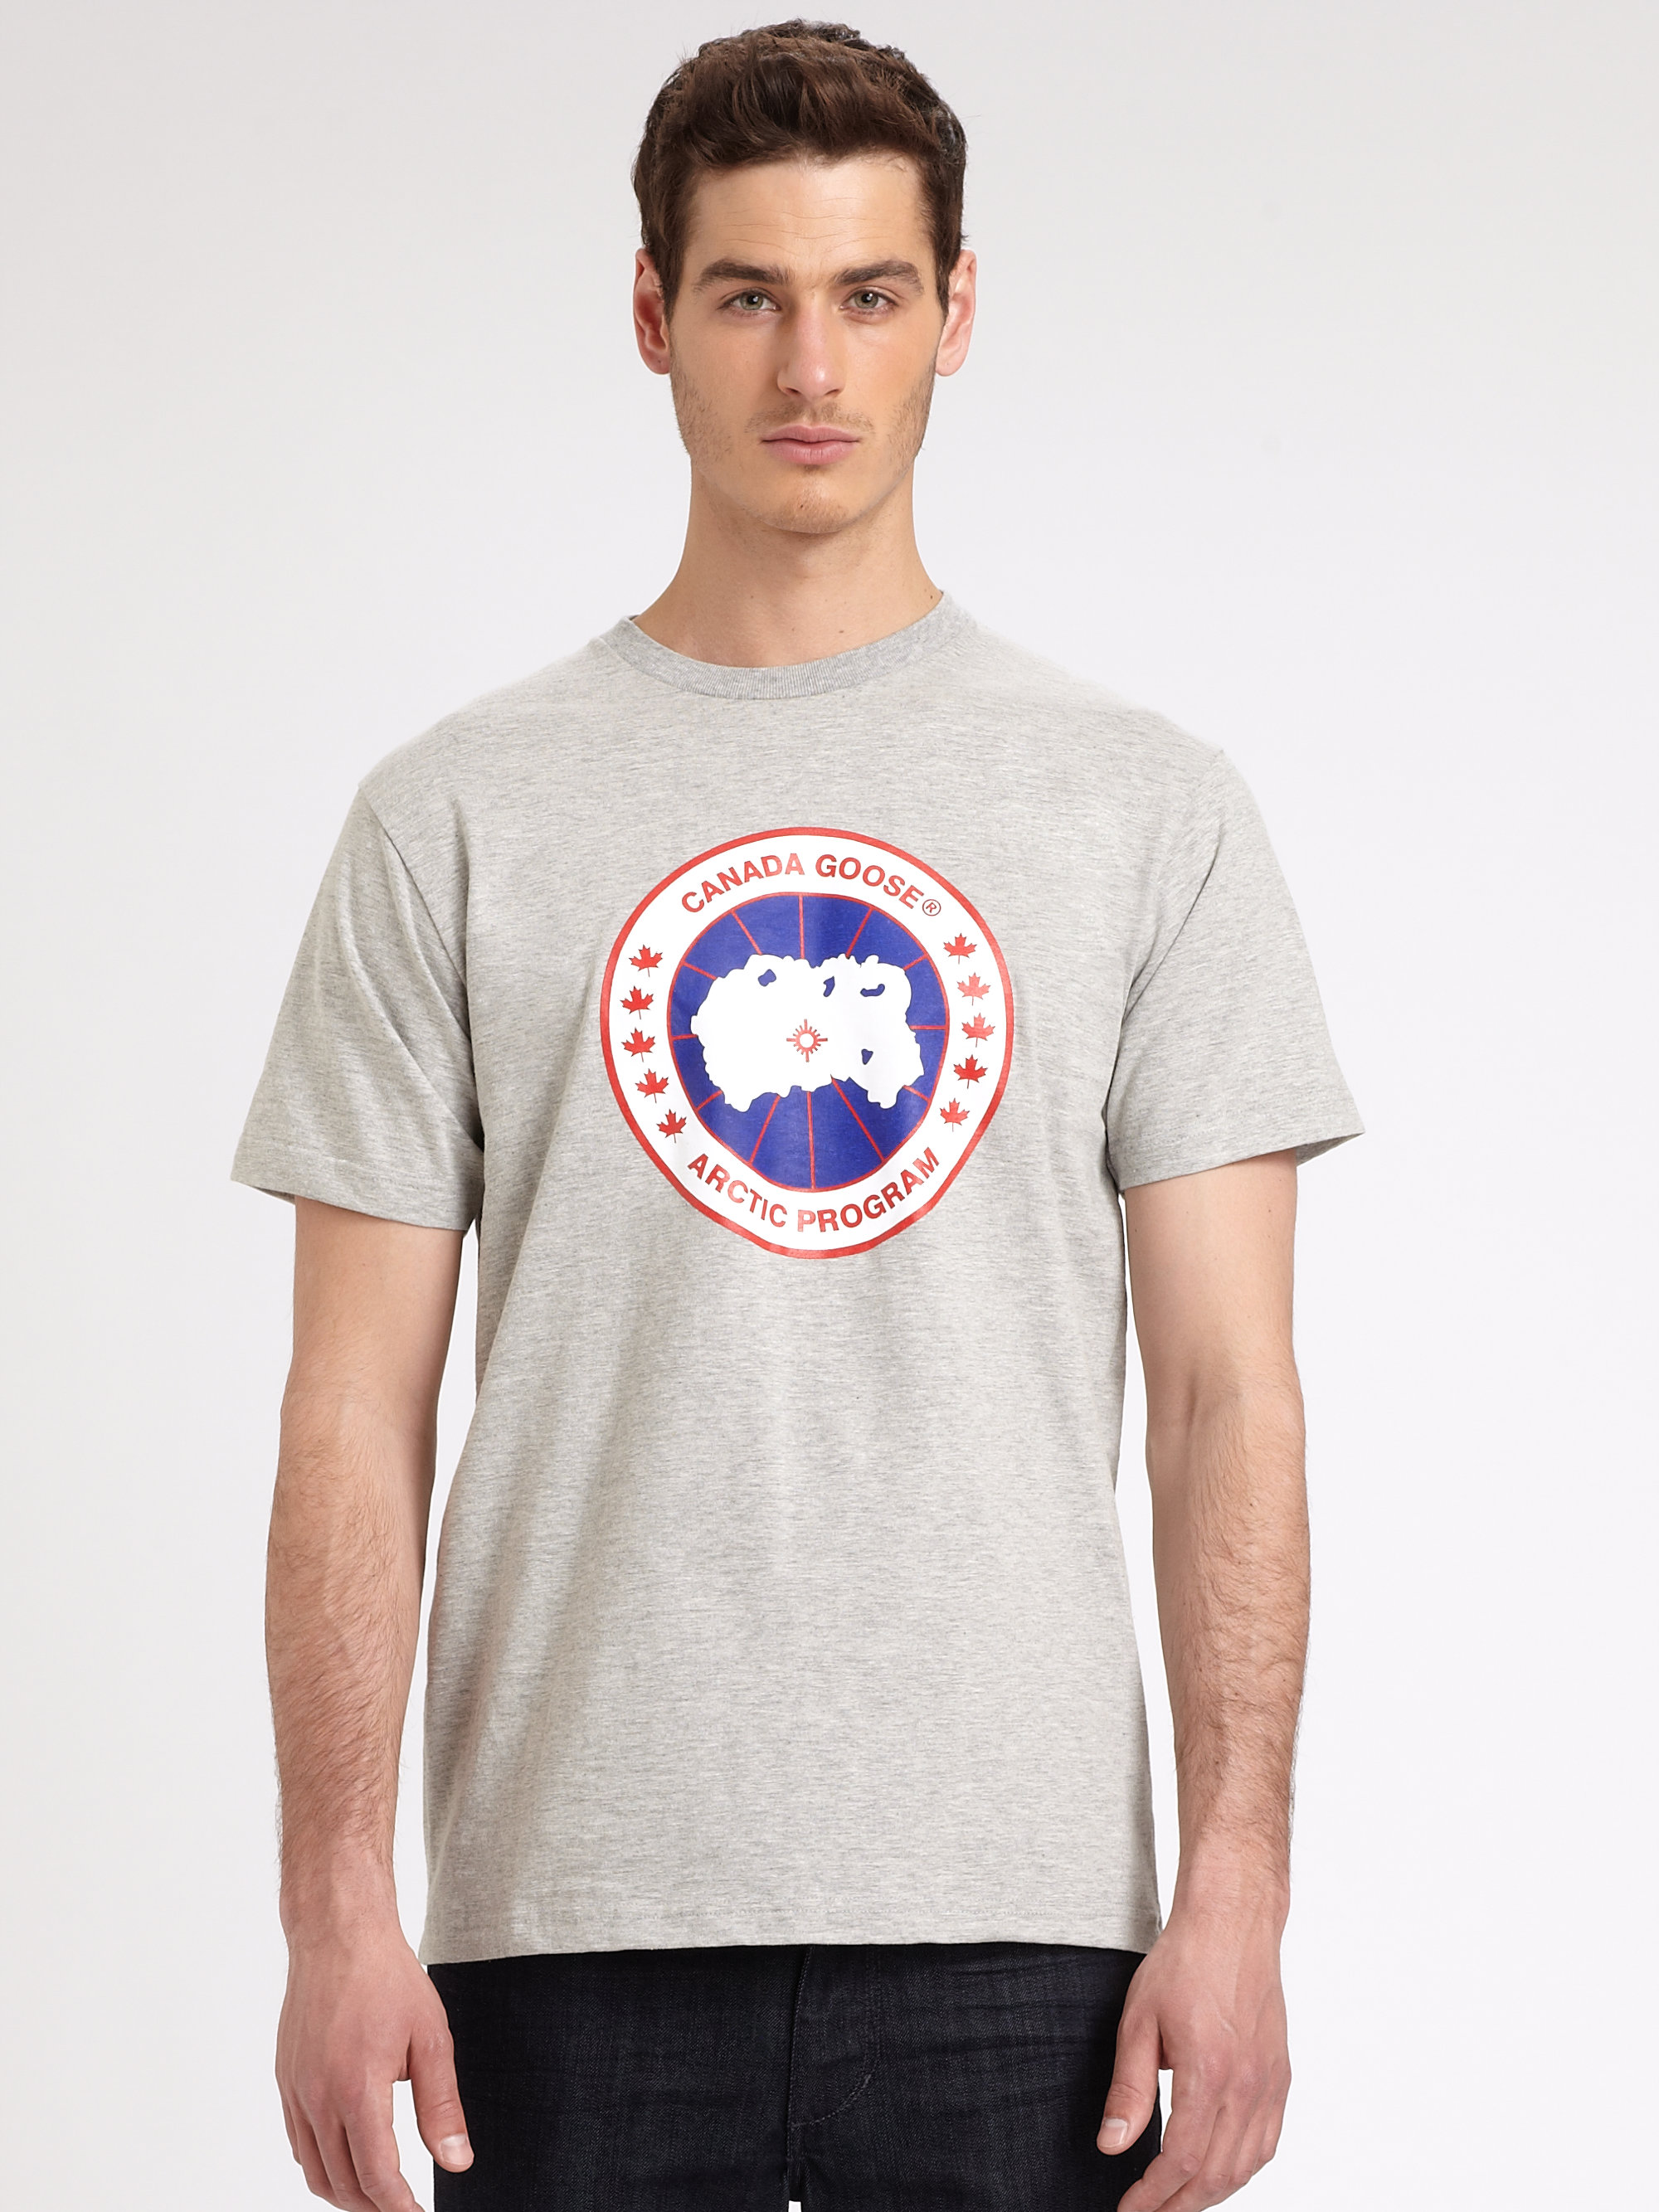 Canada goose cotton tee in gray for men lyst for Canada goose t shirt